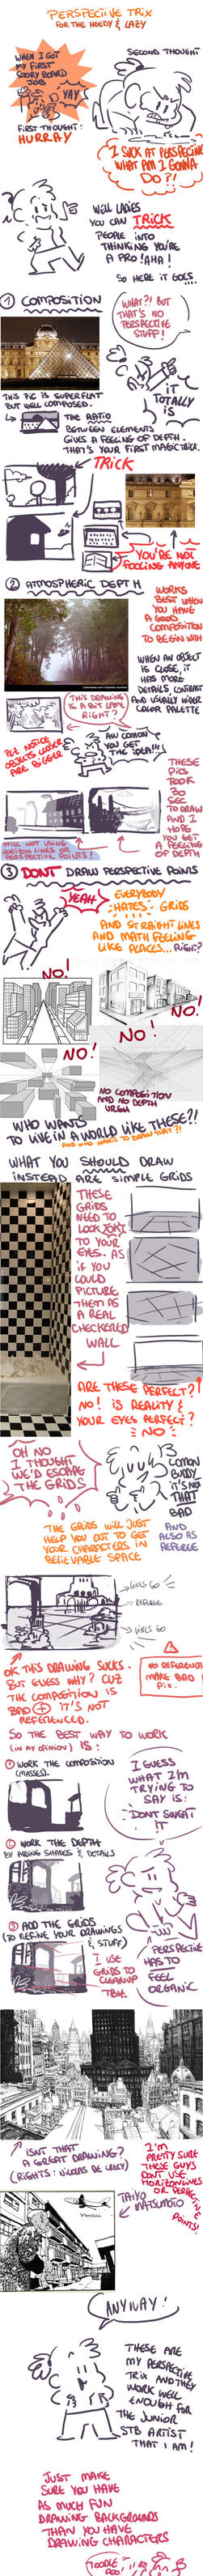 Perspective tutorial (trix for the needy and lazy) by nounouille